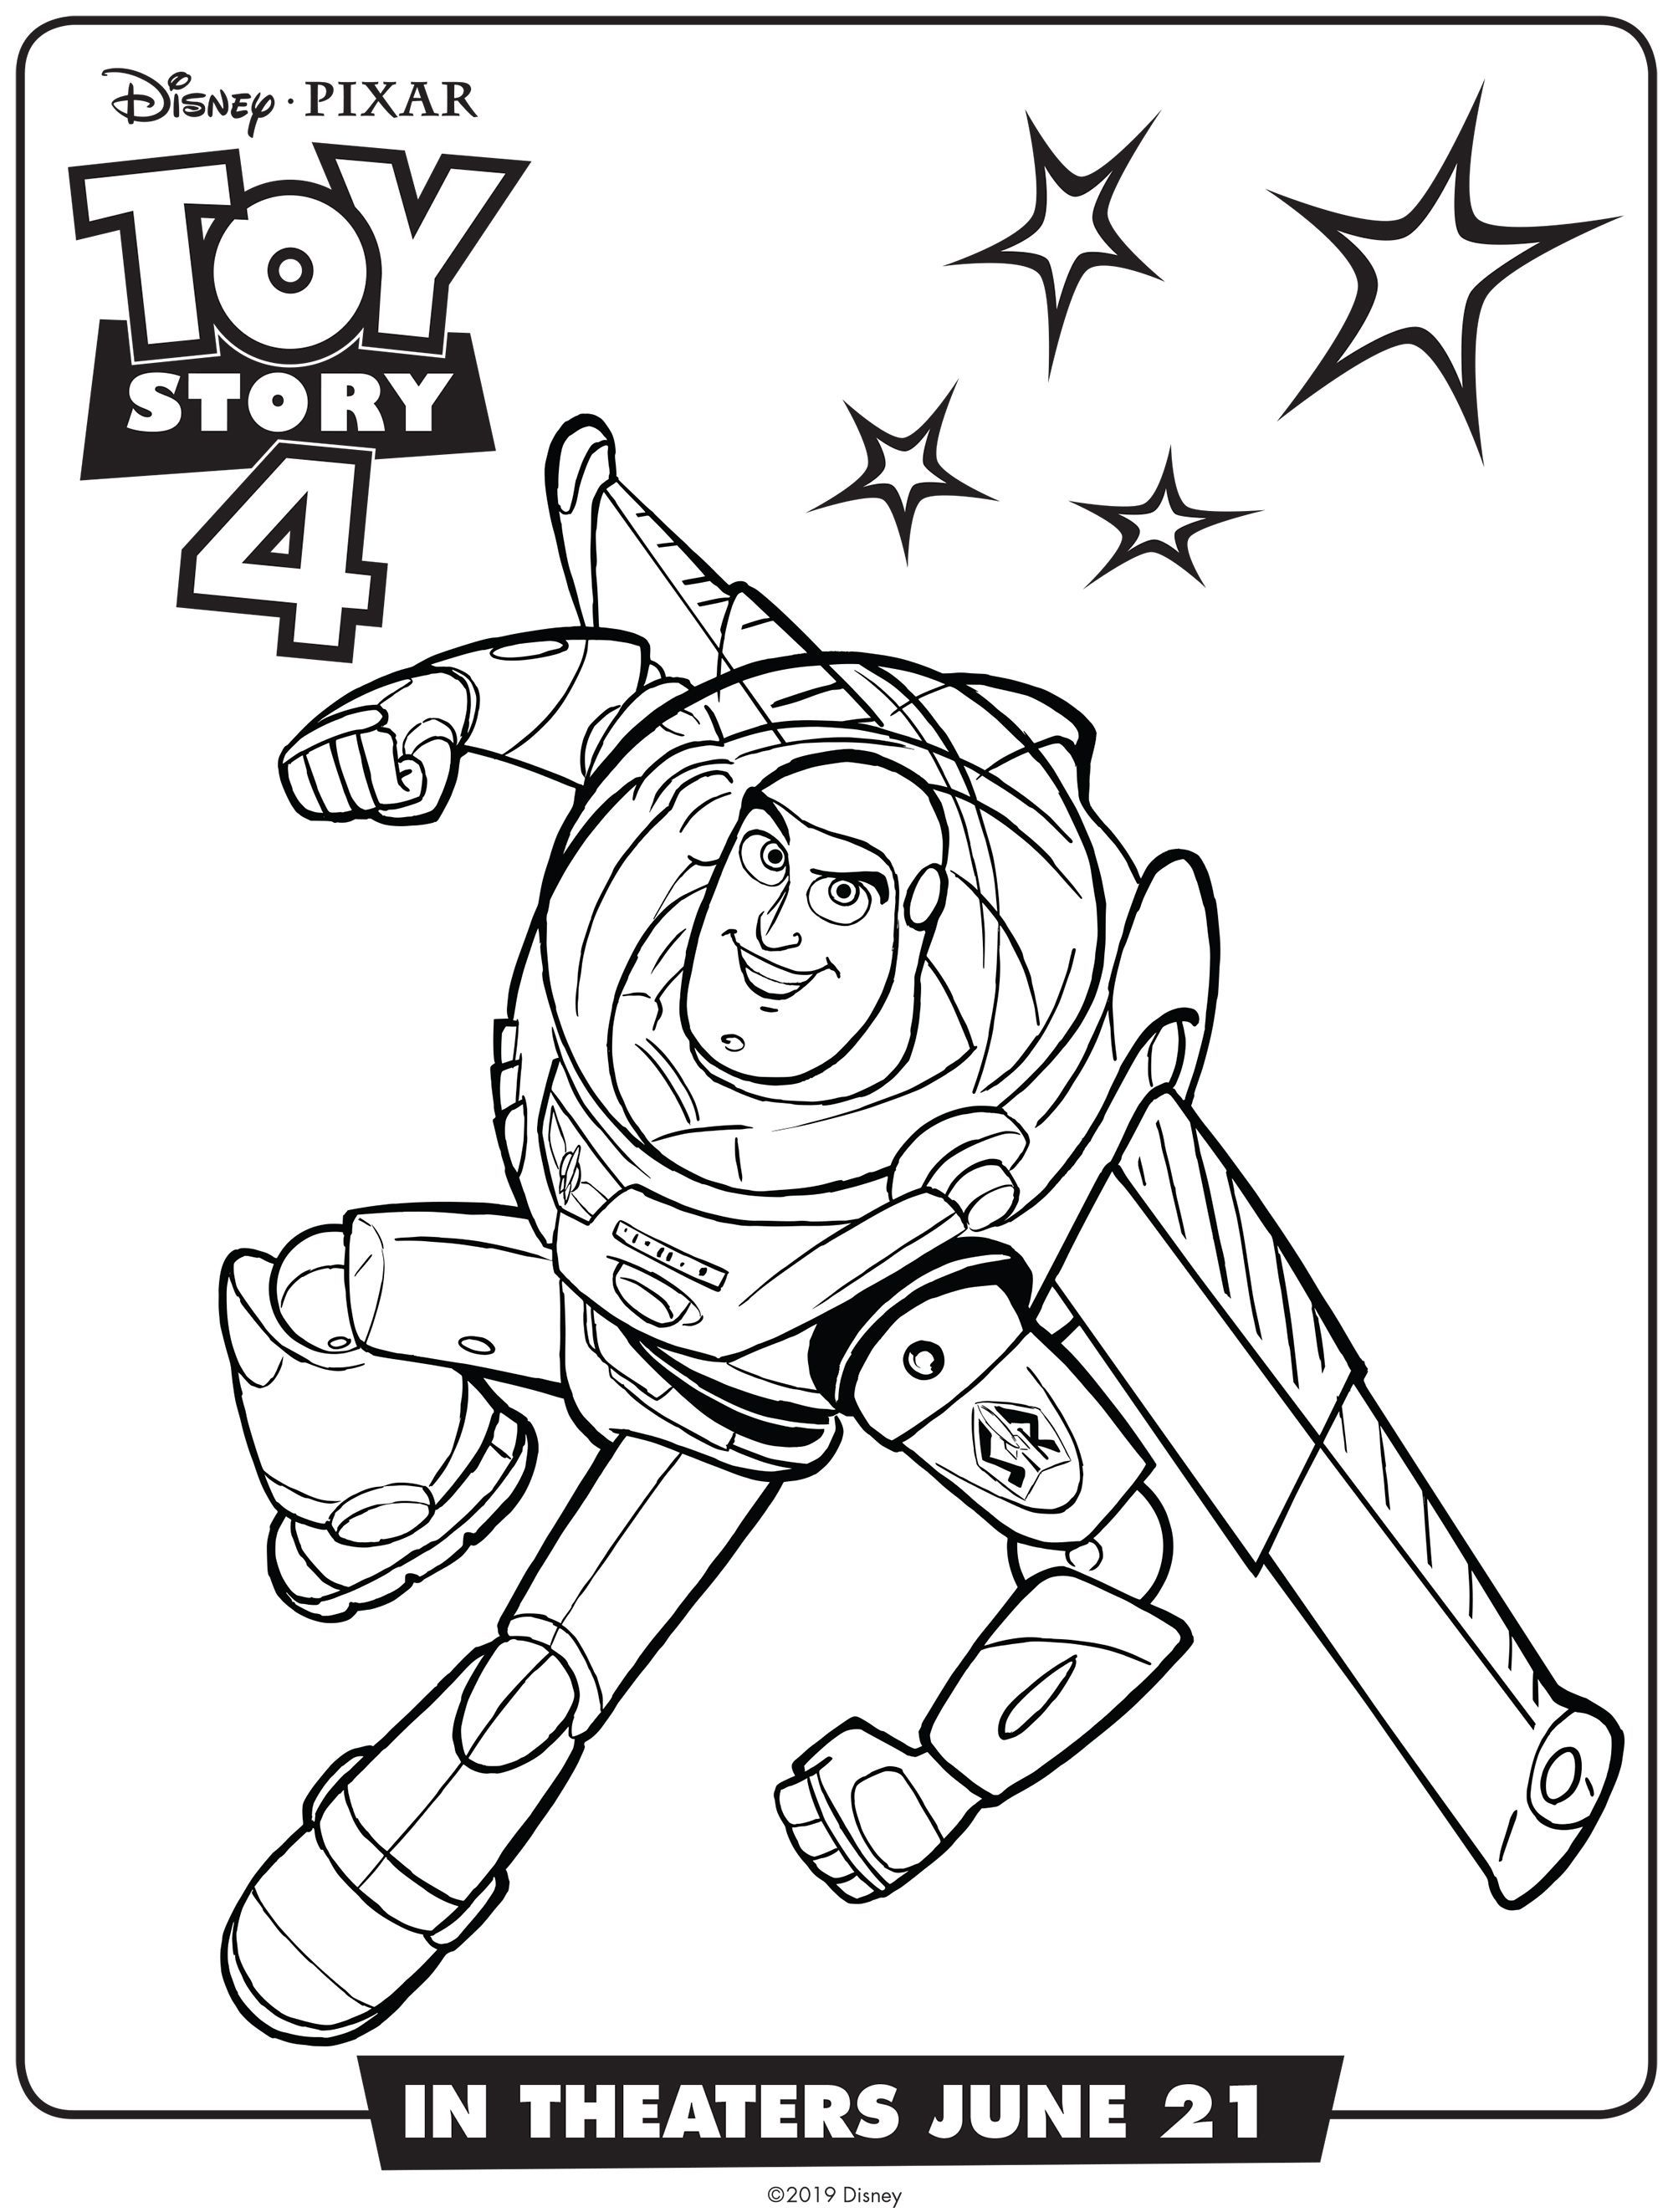 Buzz Lightyear Toy Story 4 Coloring Pages In 2020 Toy Story